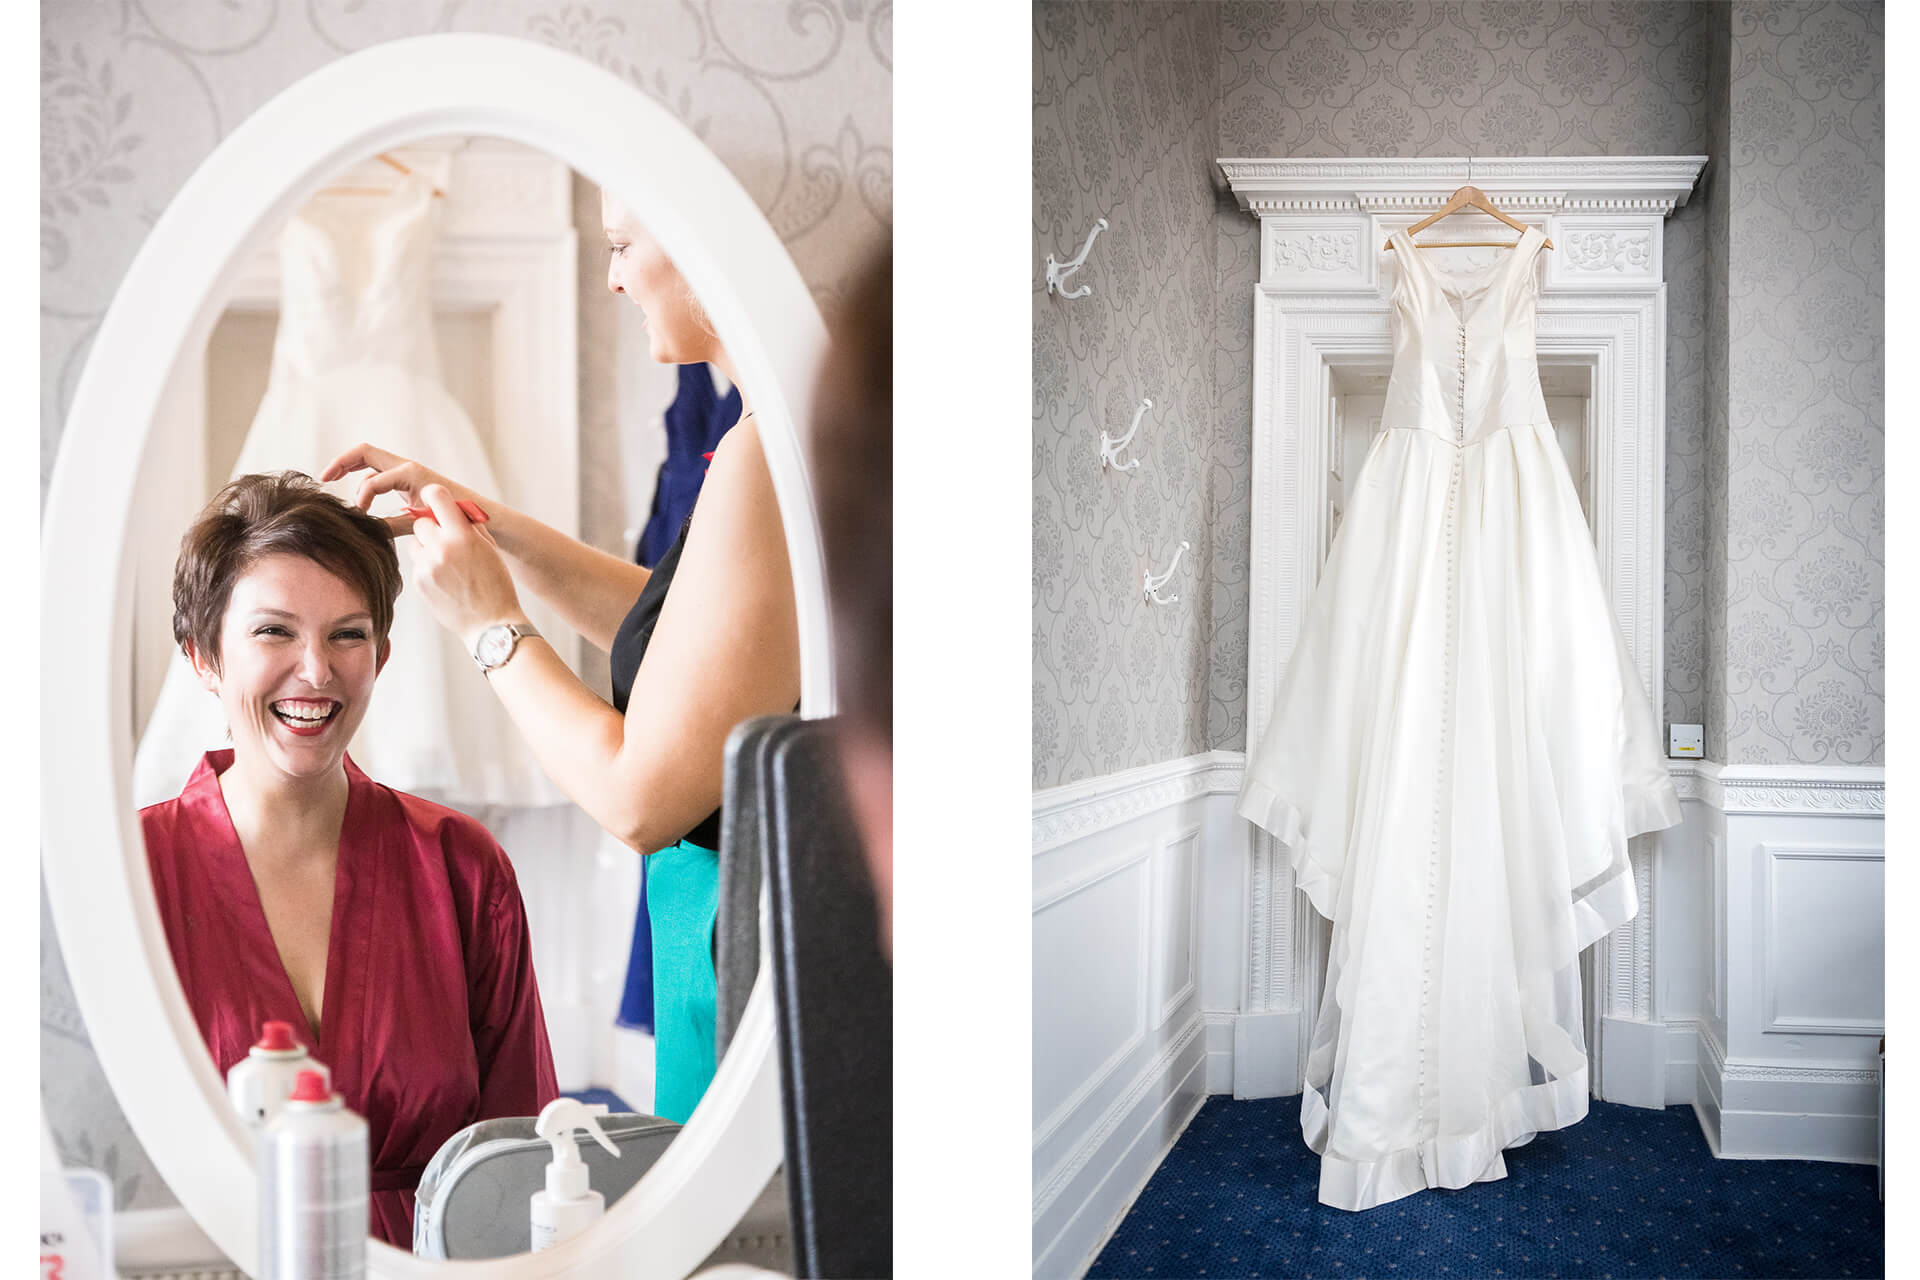 bride-preparation images